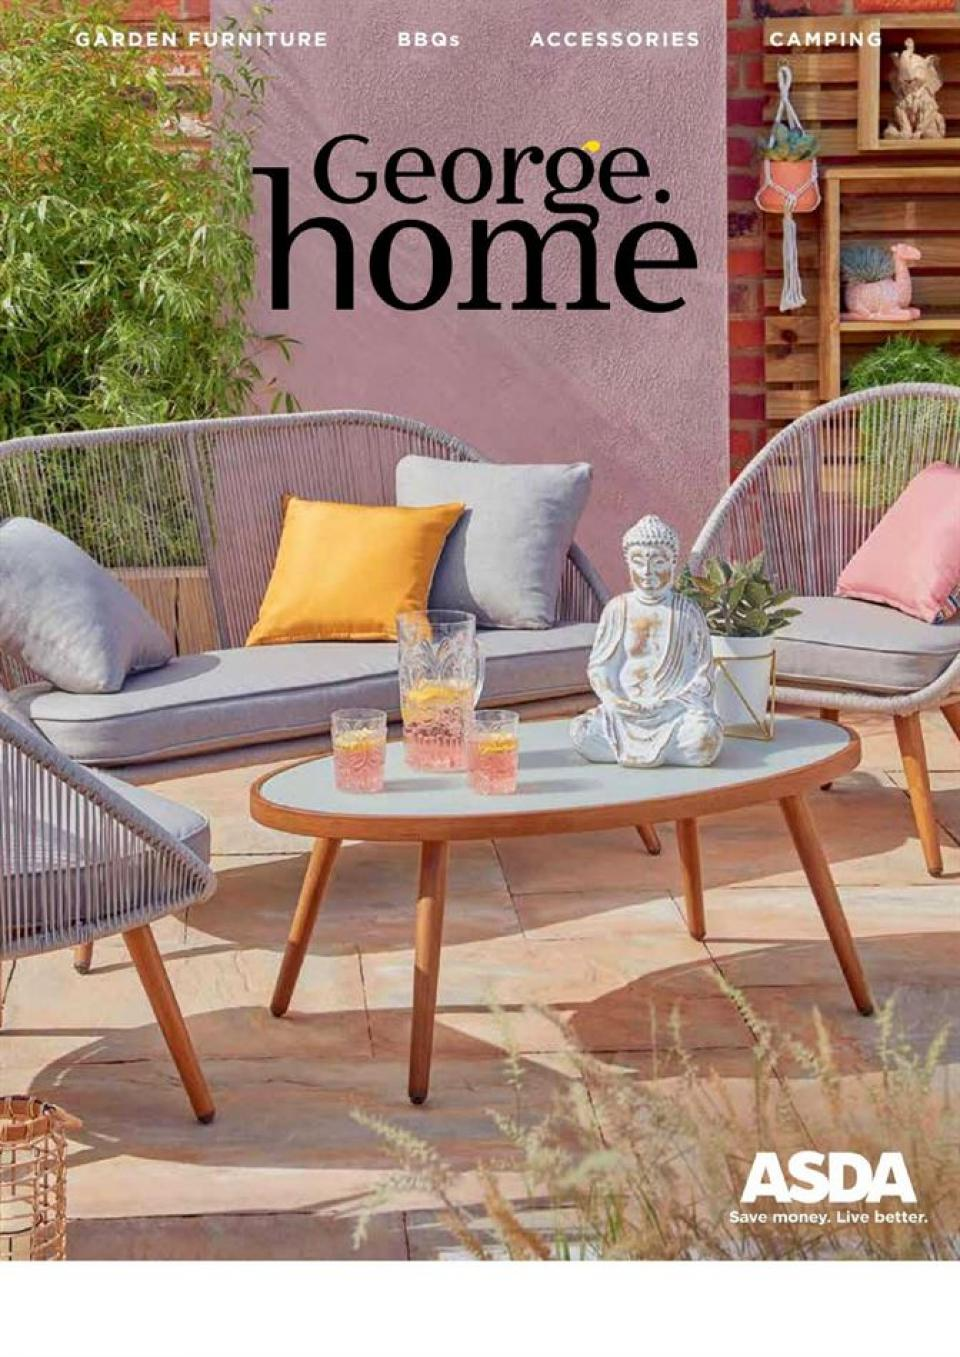 asda george home offers 24 september 2020